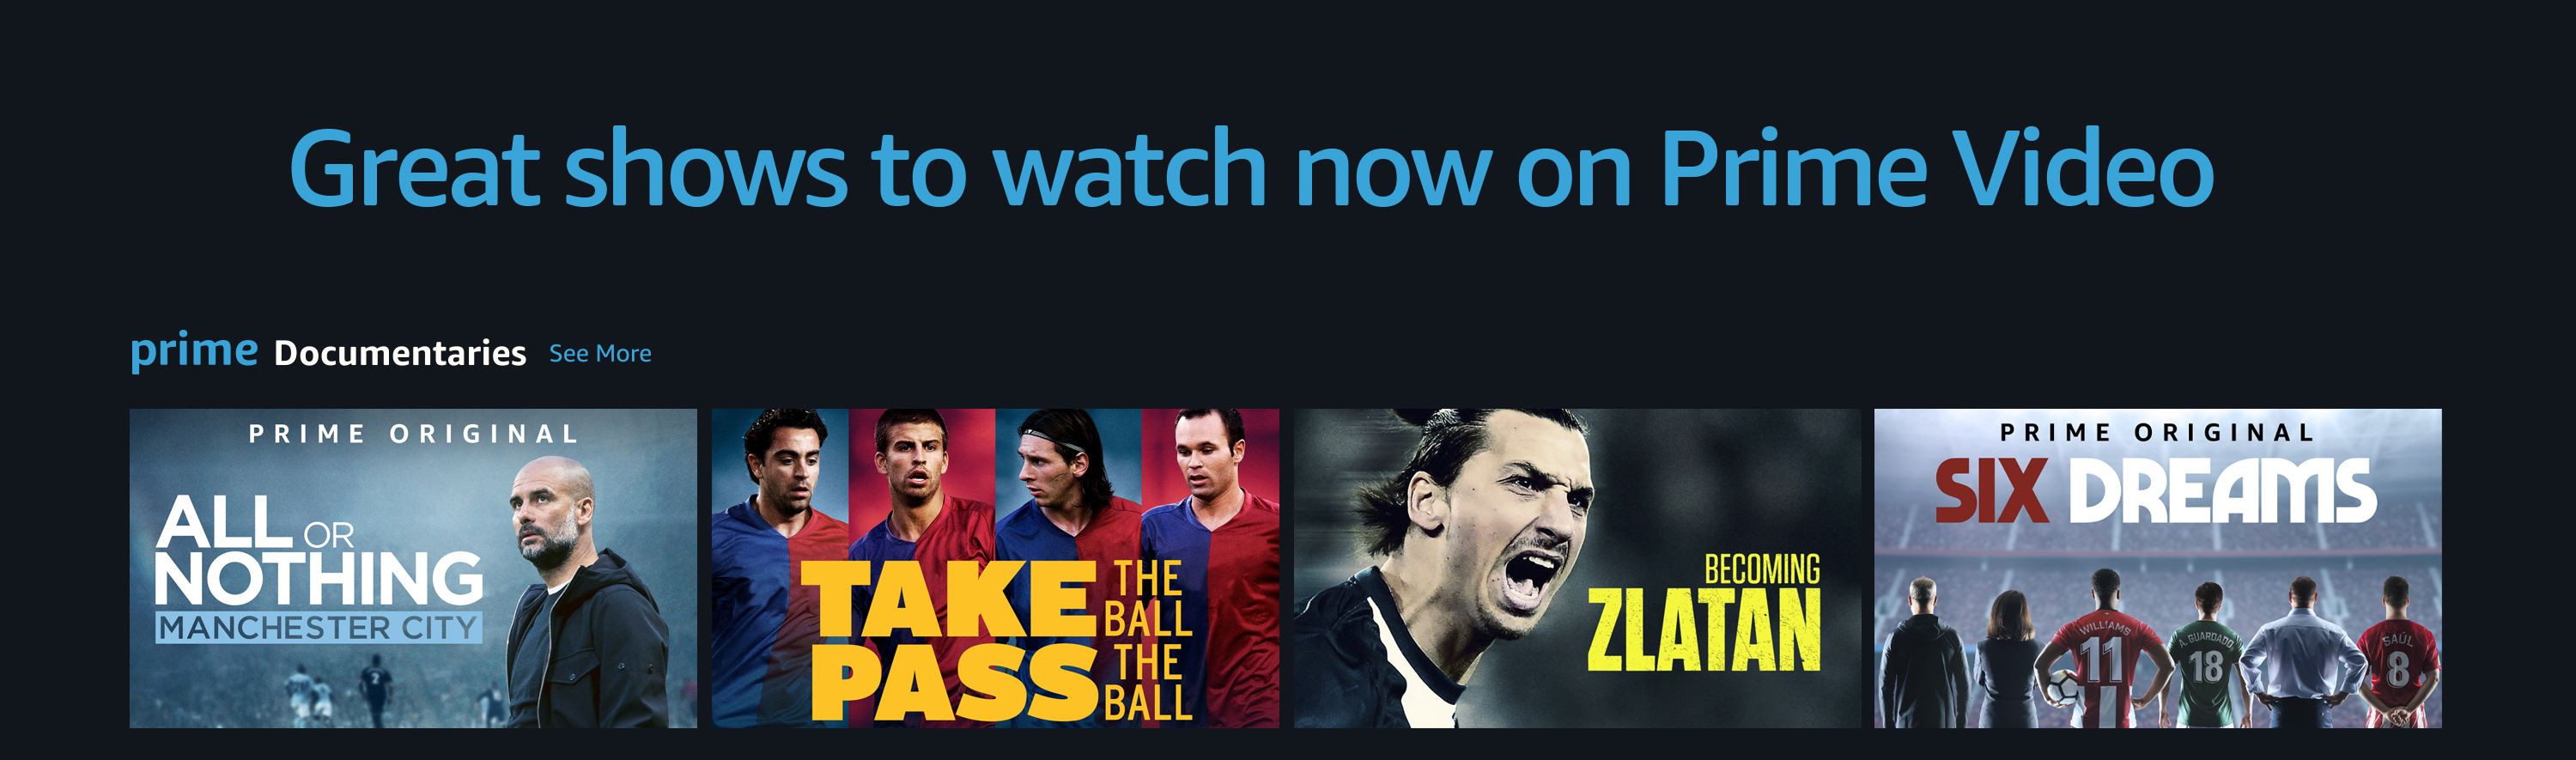 Great shows on Prime Video